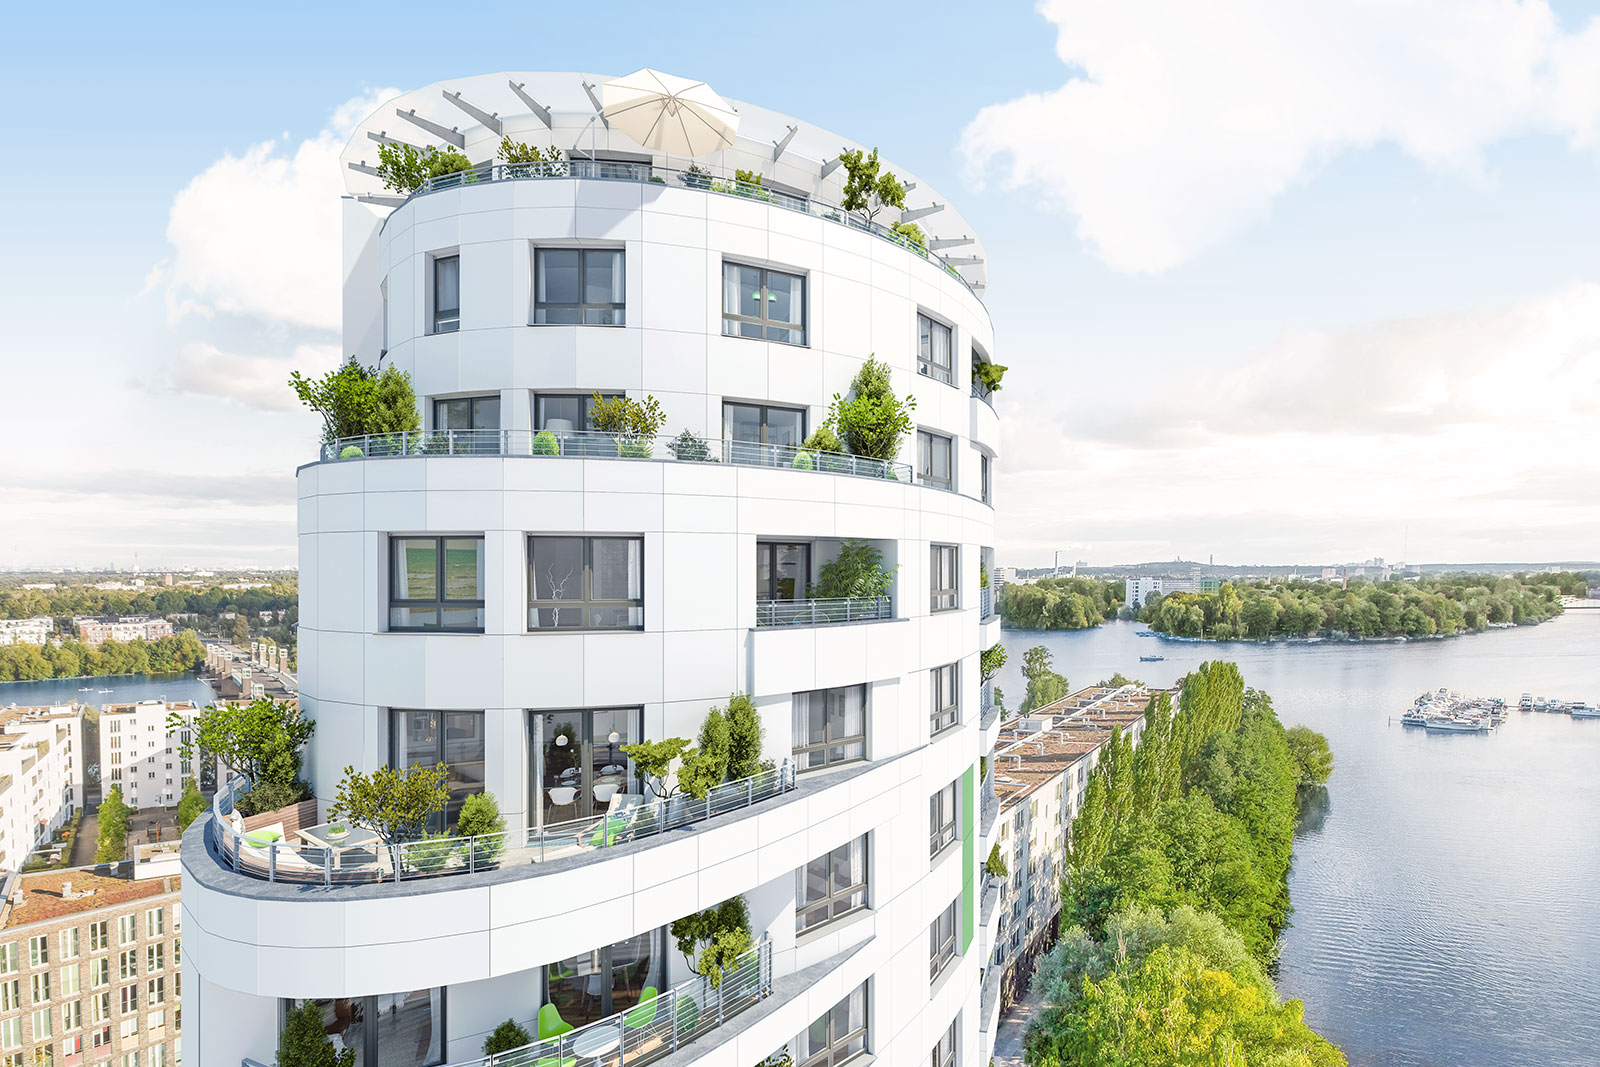 Wohnen am wasser in berlin brandenburg exklusiv for In immobilien